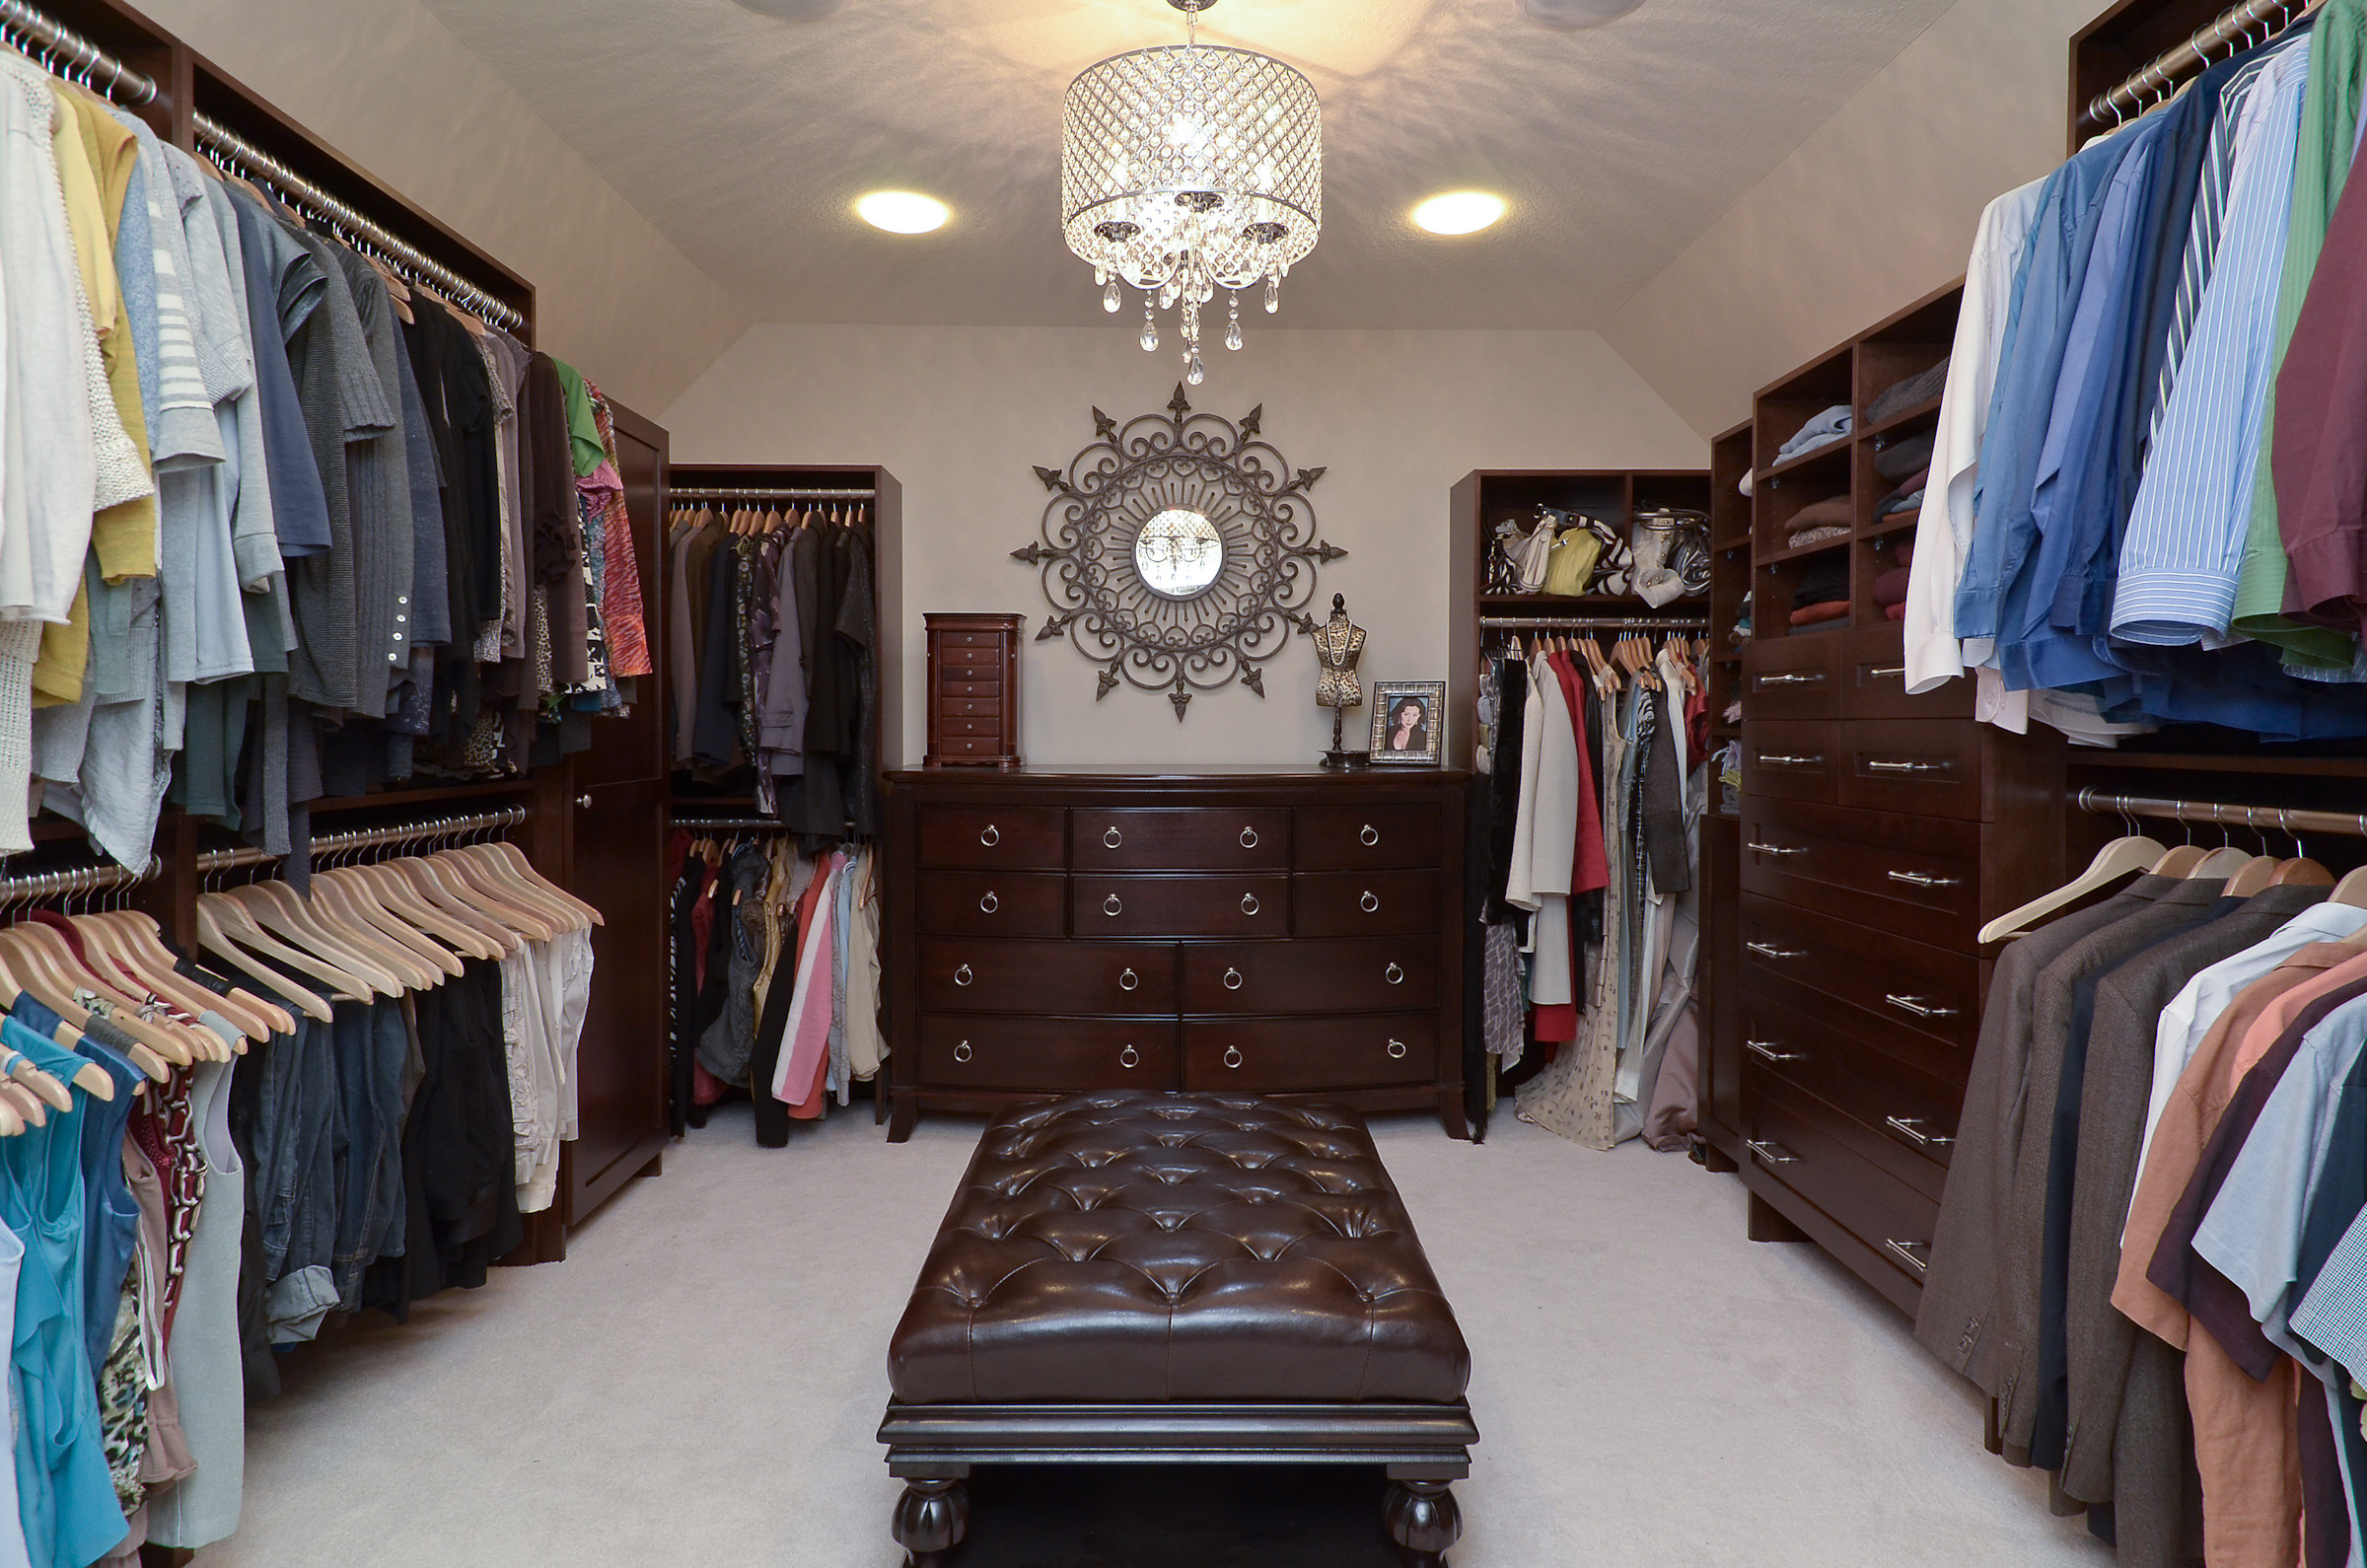 Woodbury - AFTER Master Suite Remodel